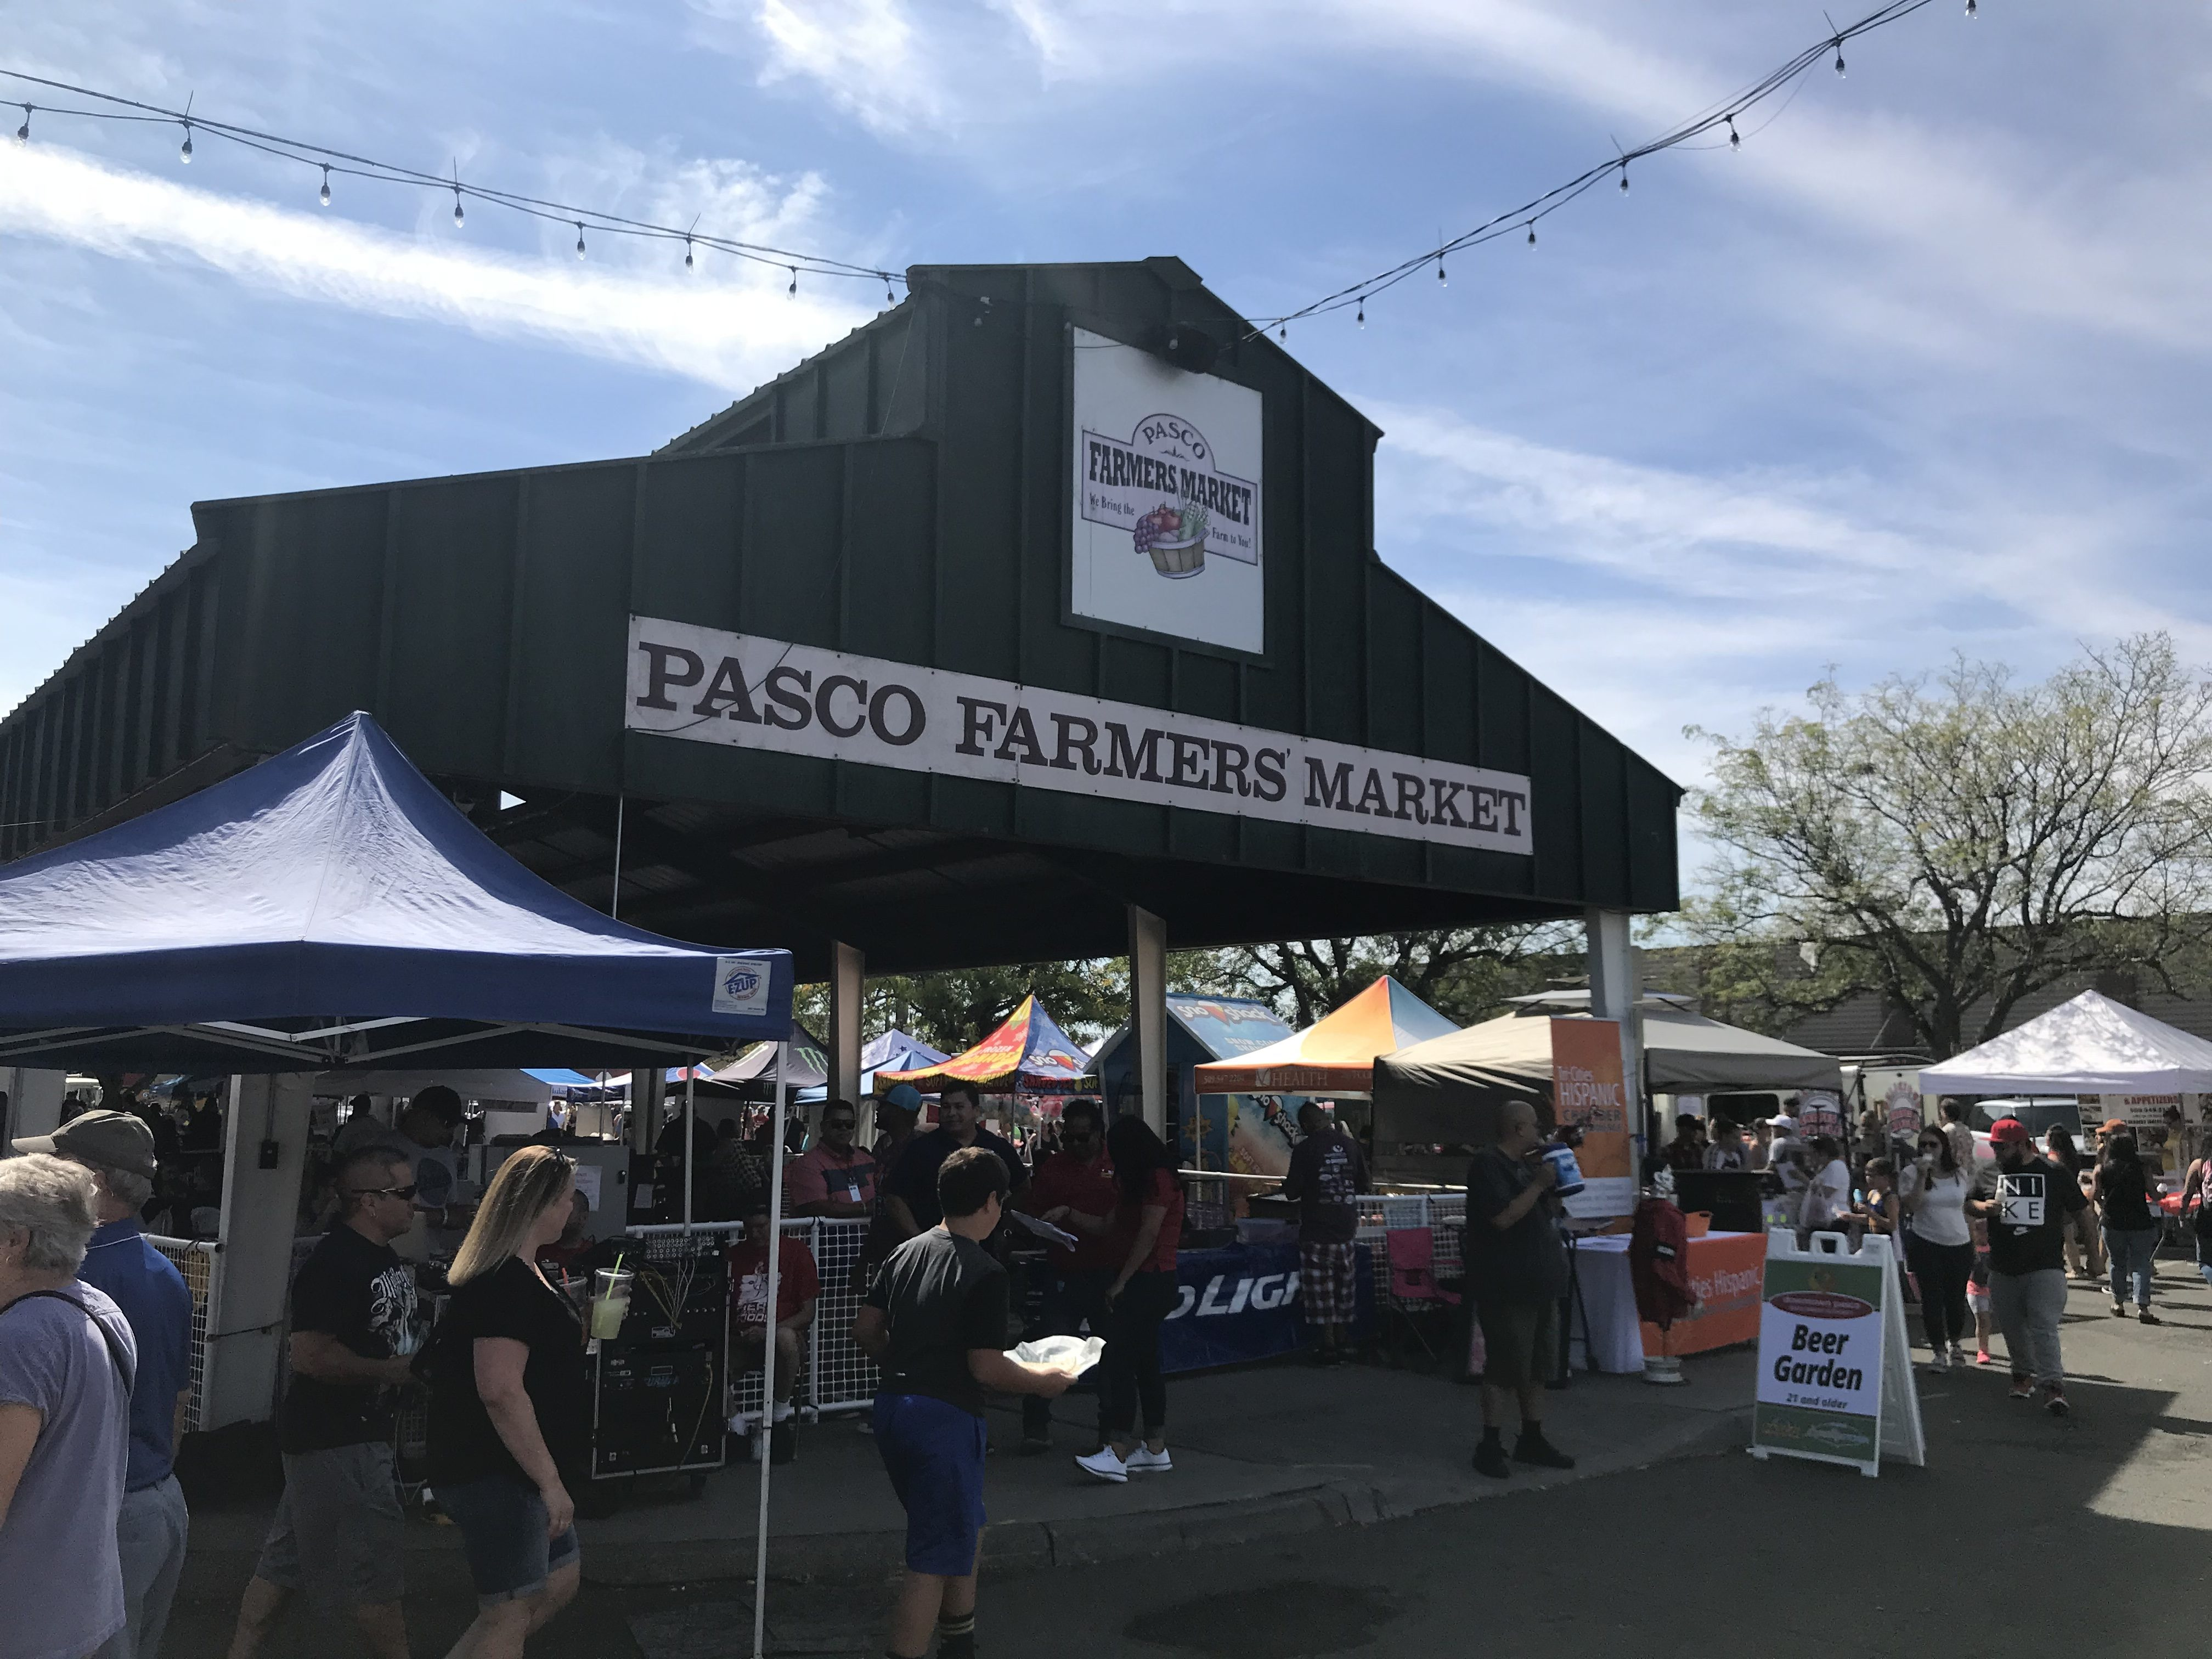 Fiery Food Festival 2018 in Pasco – September 8 2018